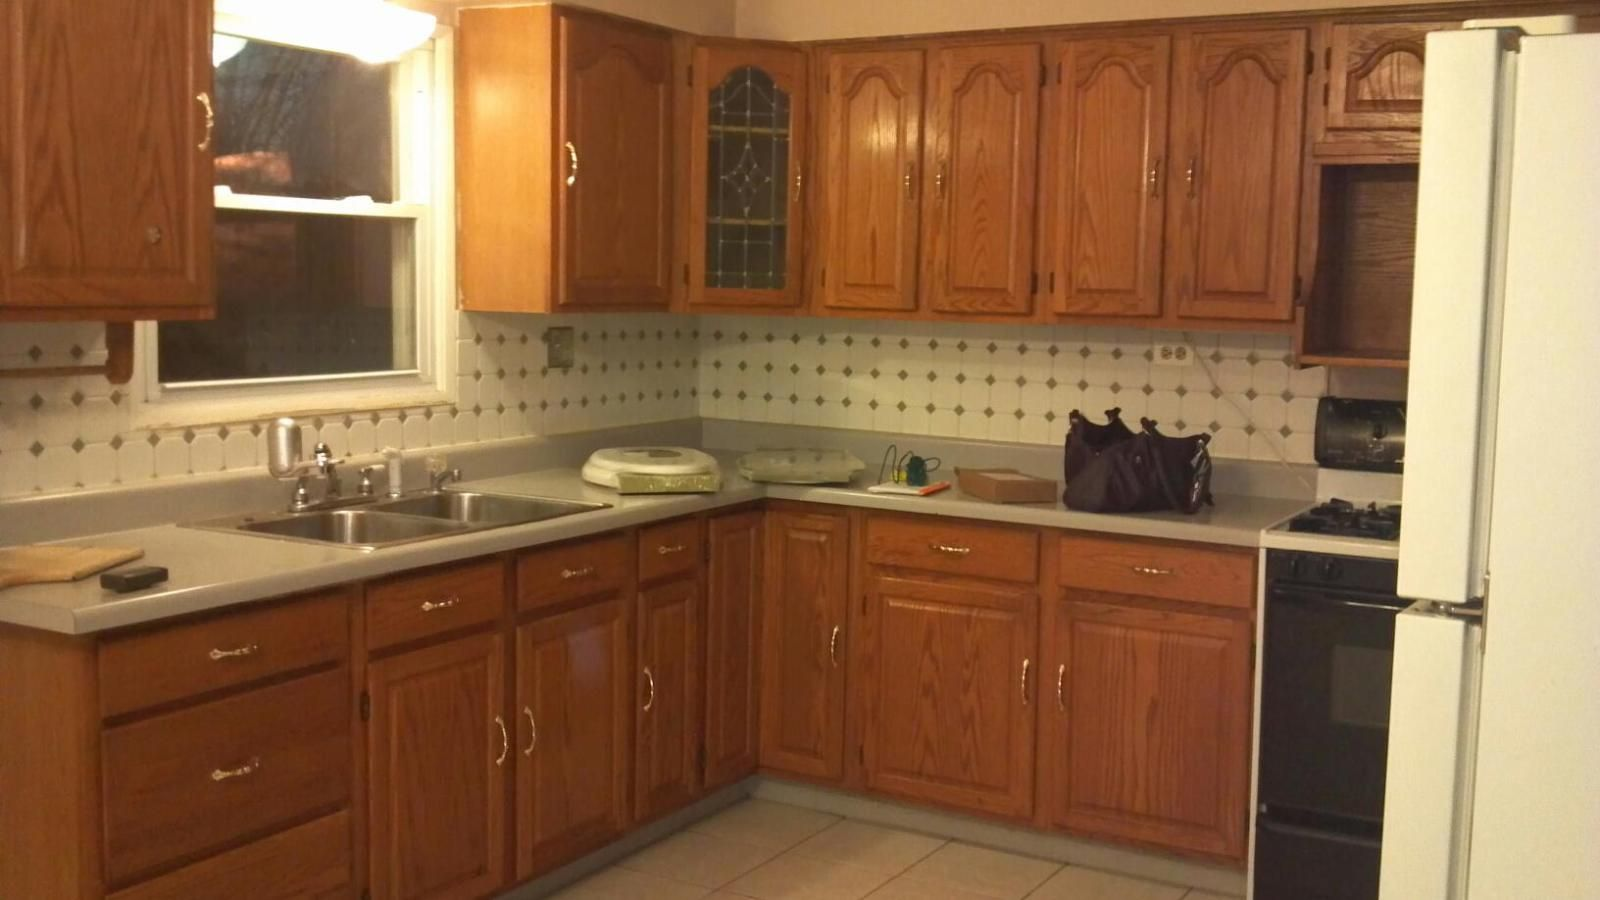 Kitchen Remodel on a Budget | Budgeting, Kitchens and Laundry rooms